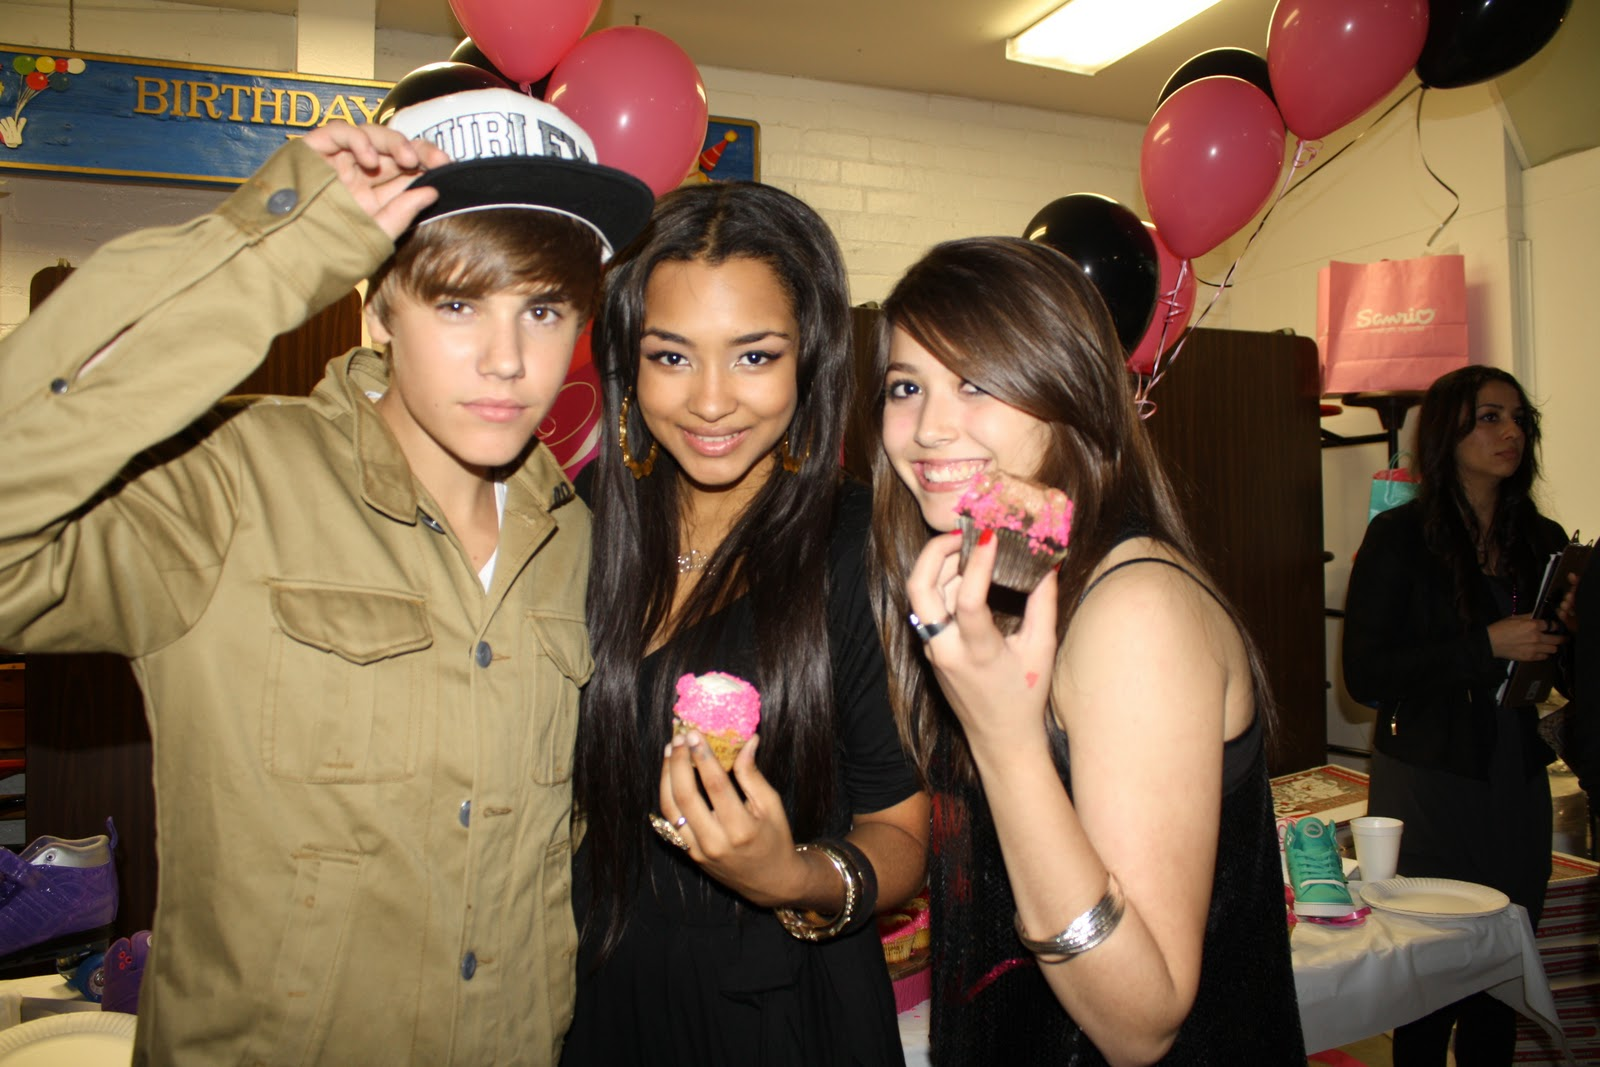 Justin bieber and jessica jarrell kissing